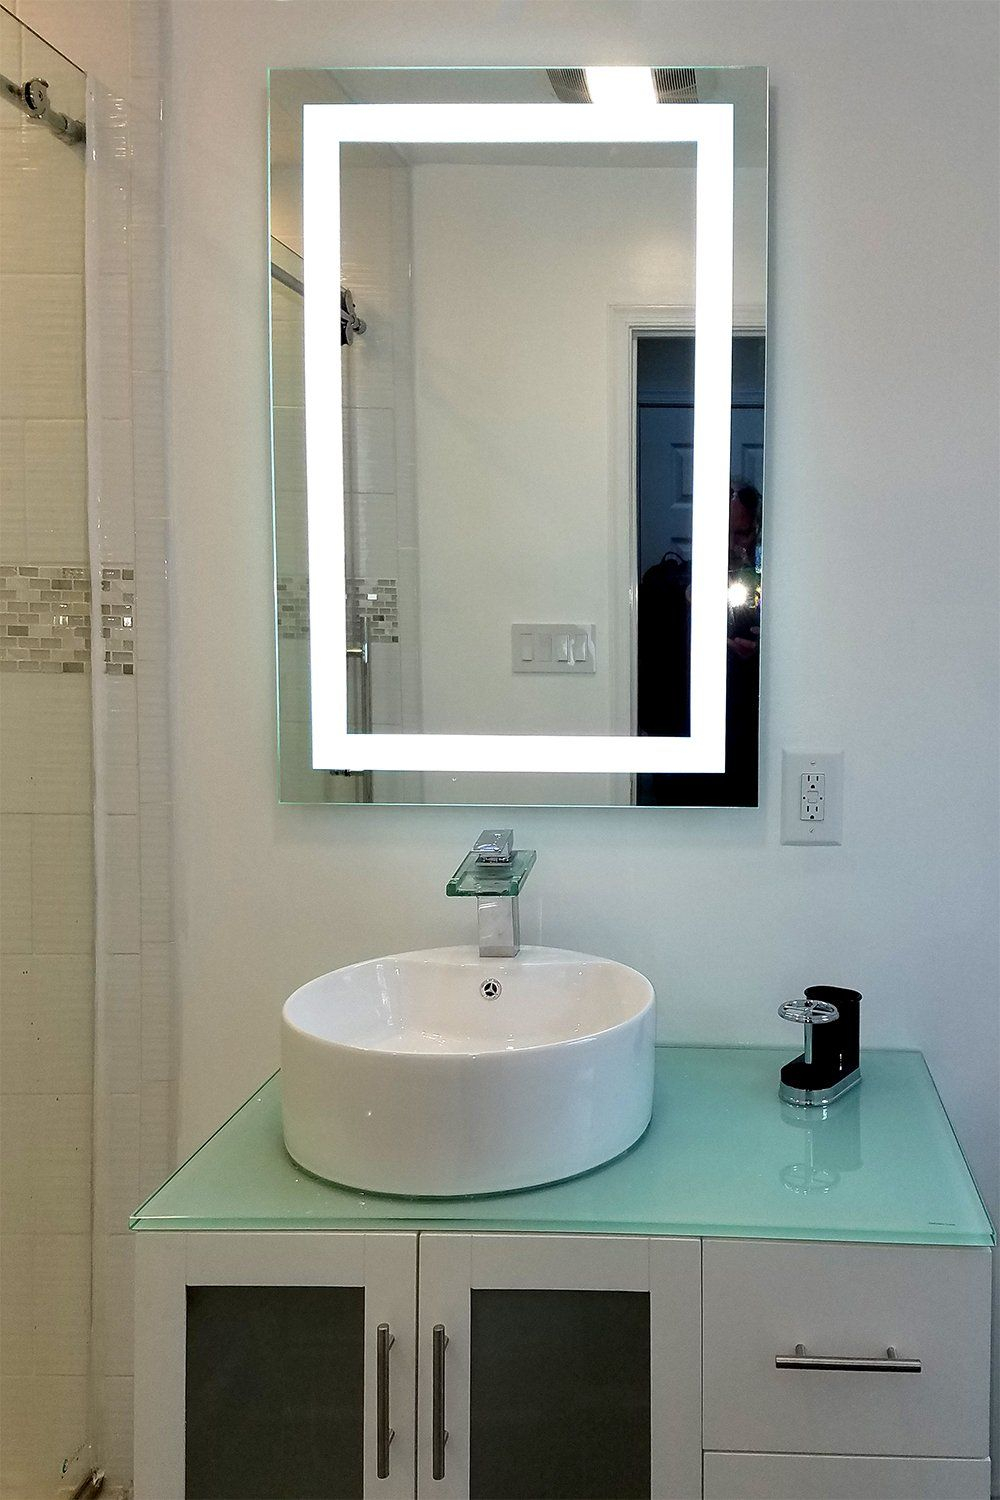 Front Lighted Led Bathroom Vanity Mirror 32 X 48 regarding dimensions 1000 X 1500